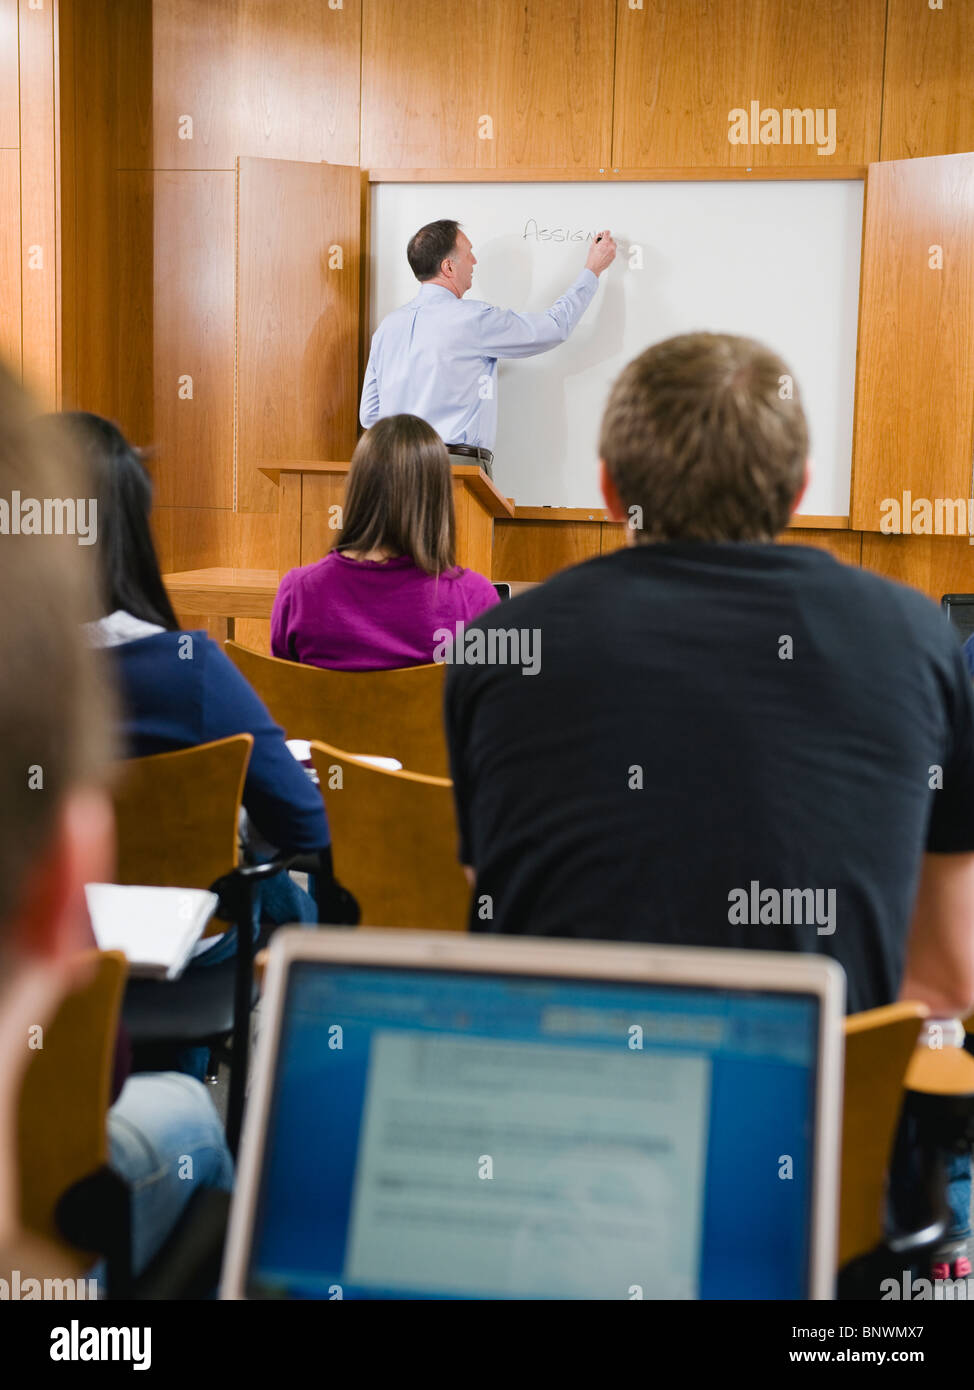 College professor giving lecture in lecture hall - Stock Image